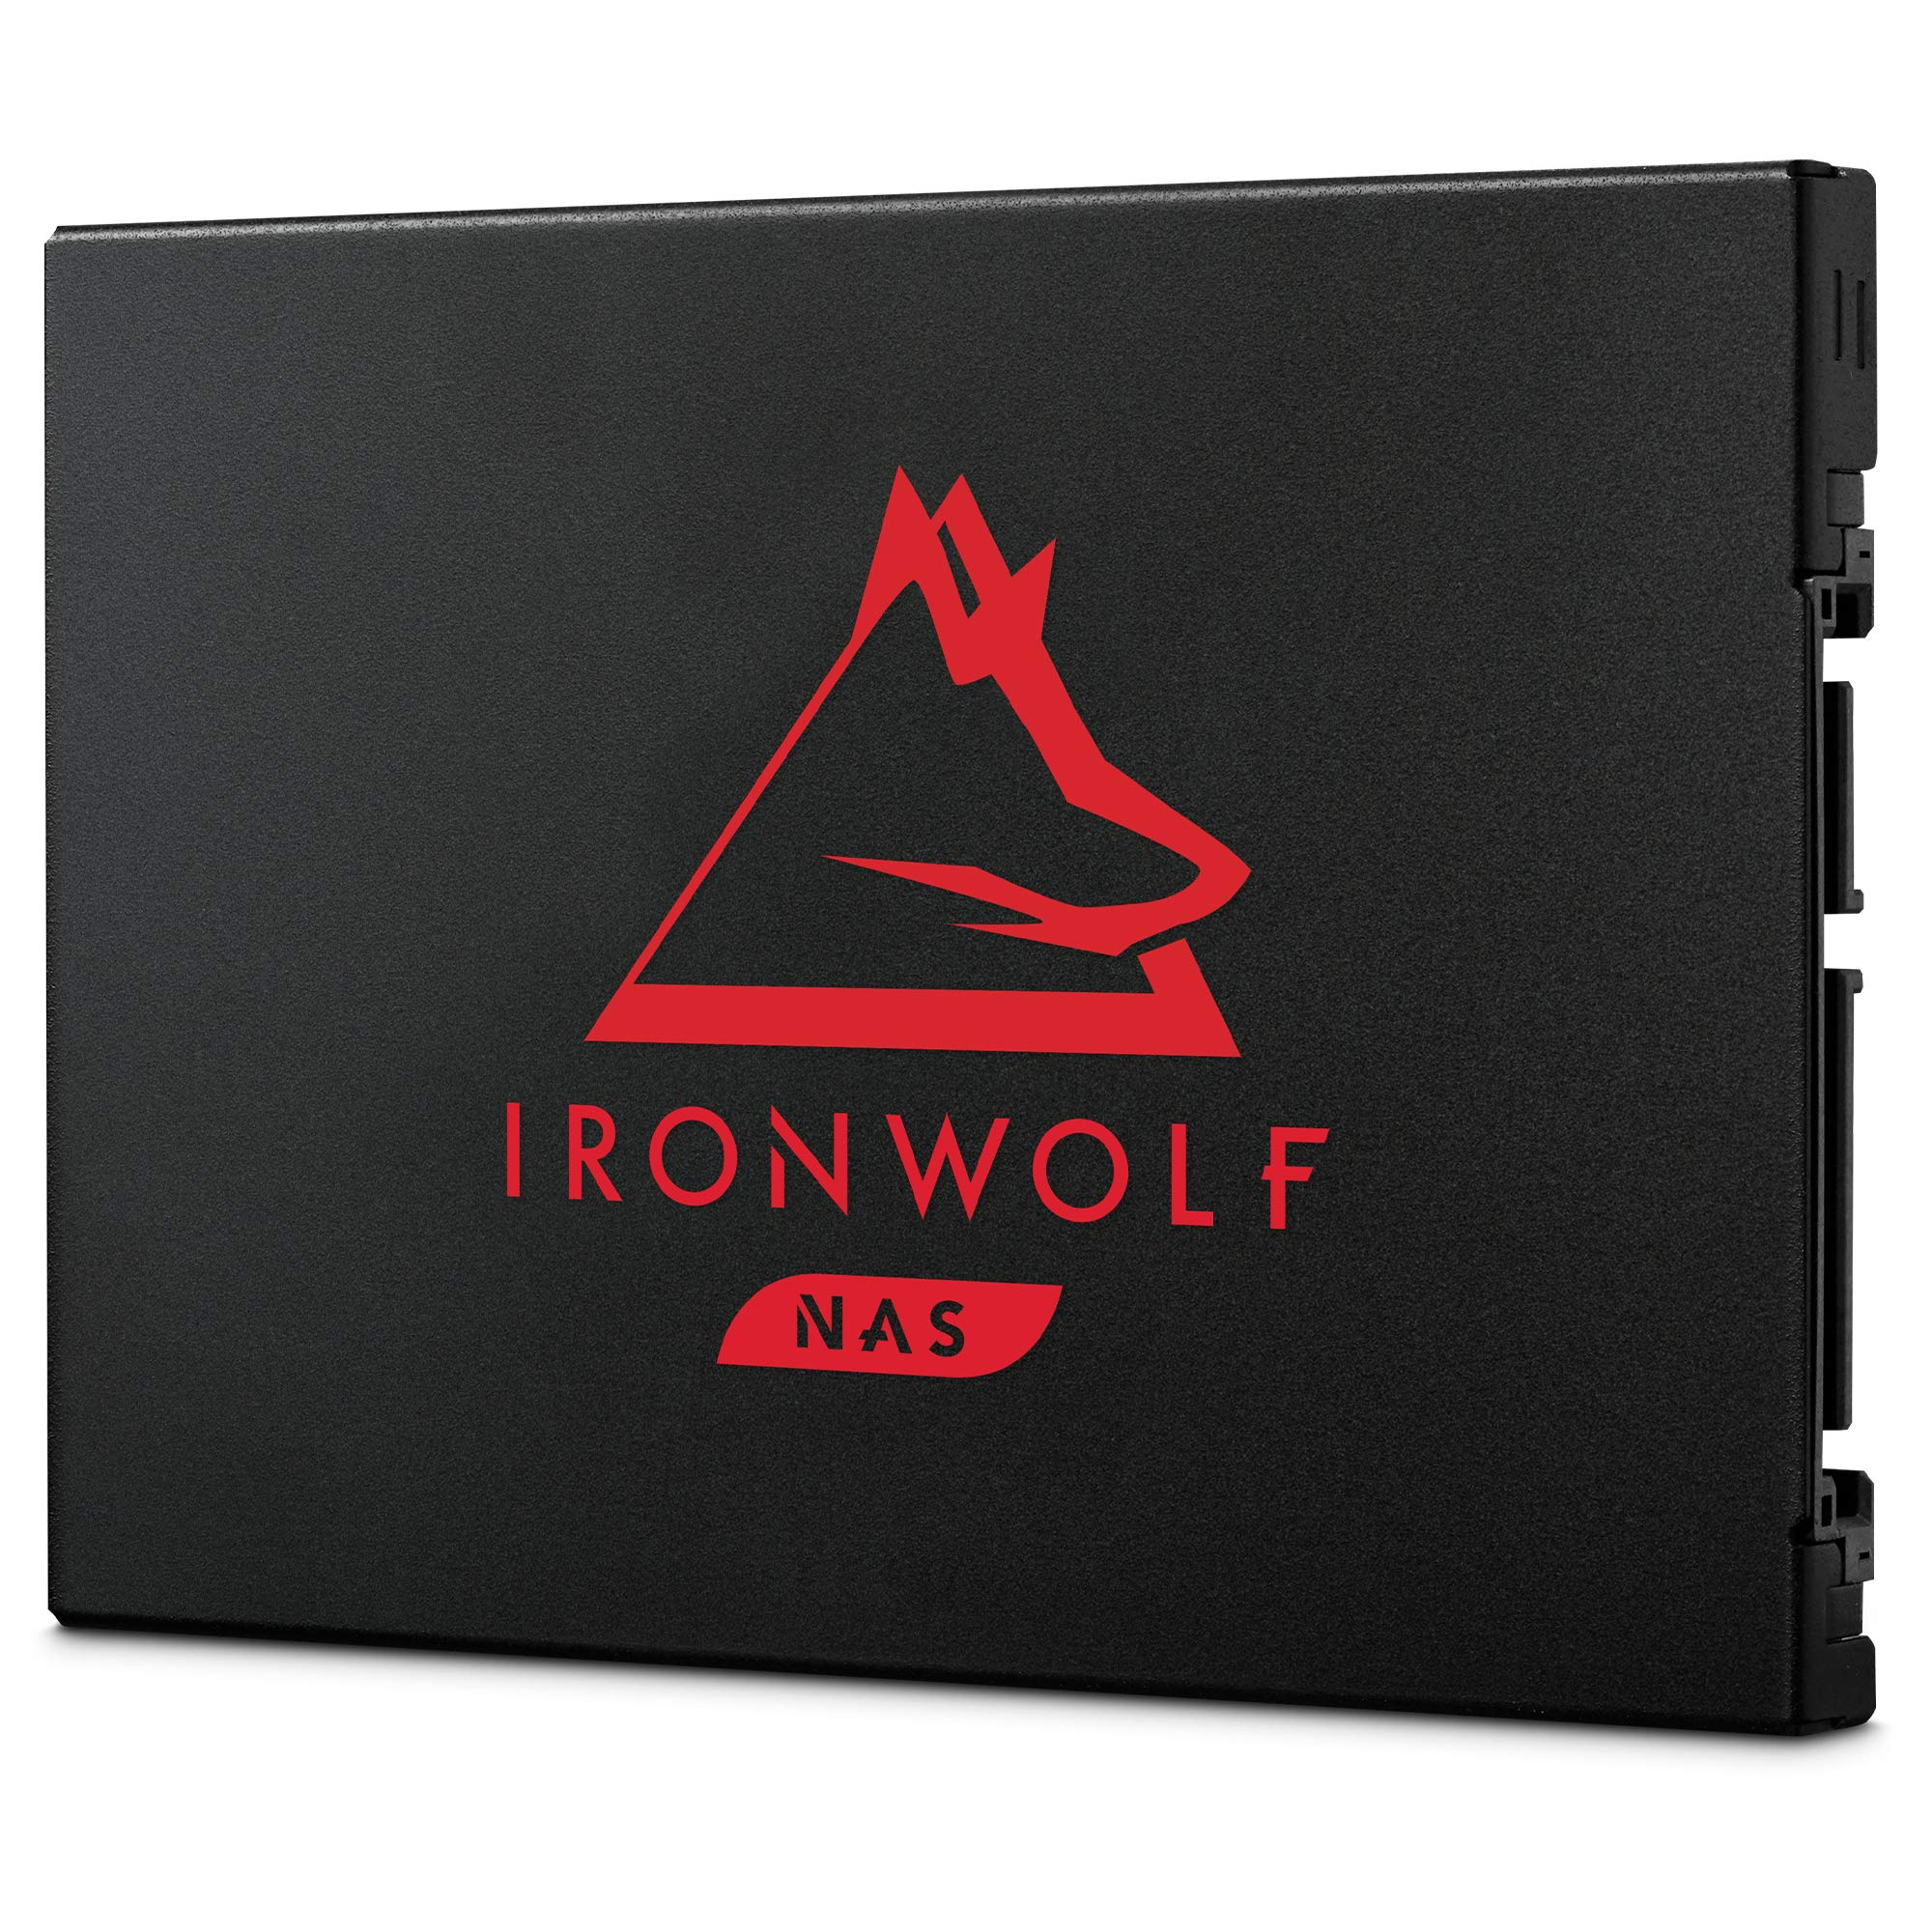 Seagate IronWolf 125 SSD 4TB NAS Internal Solid State Drive - 2.5 Inch SATA 6Gb/s speeds of up to 560MB/s, 24x7 performance with Rescue Service (ZA4000NM1A002)